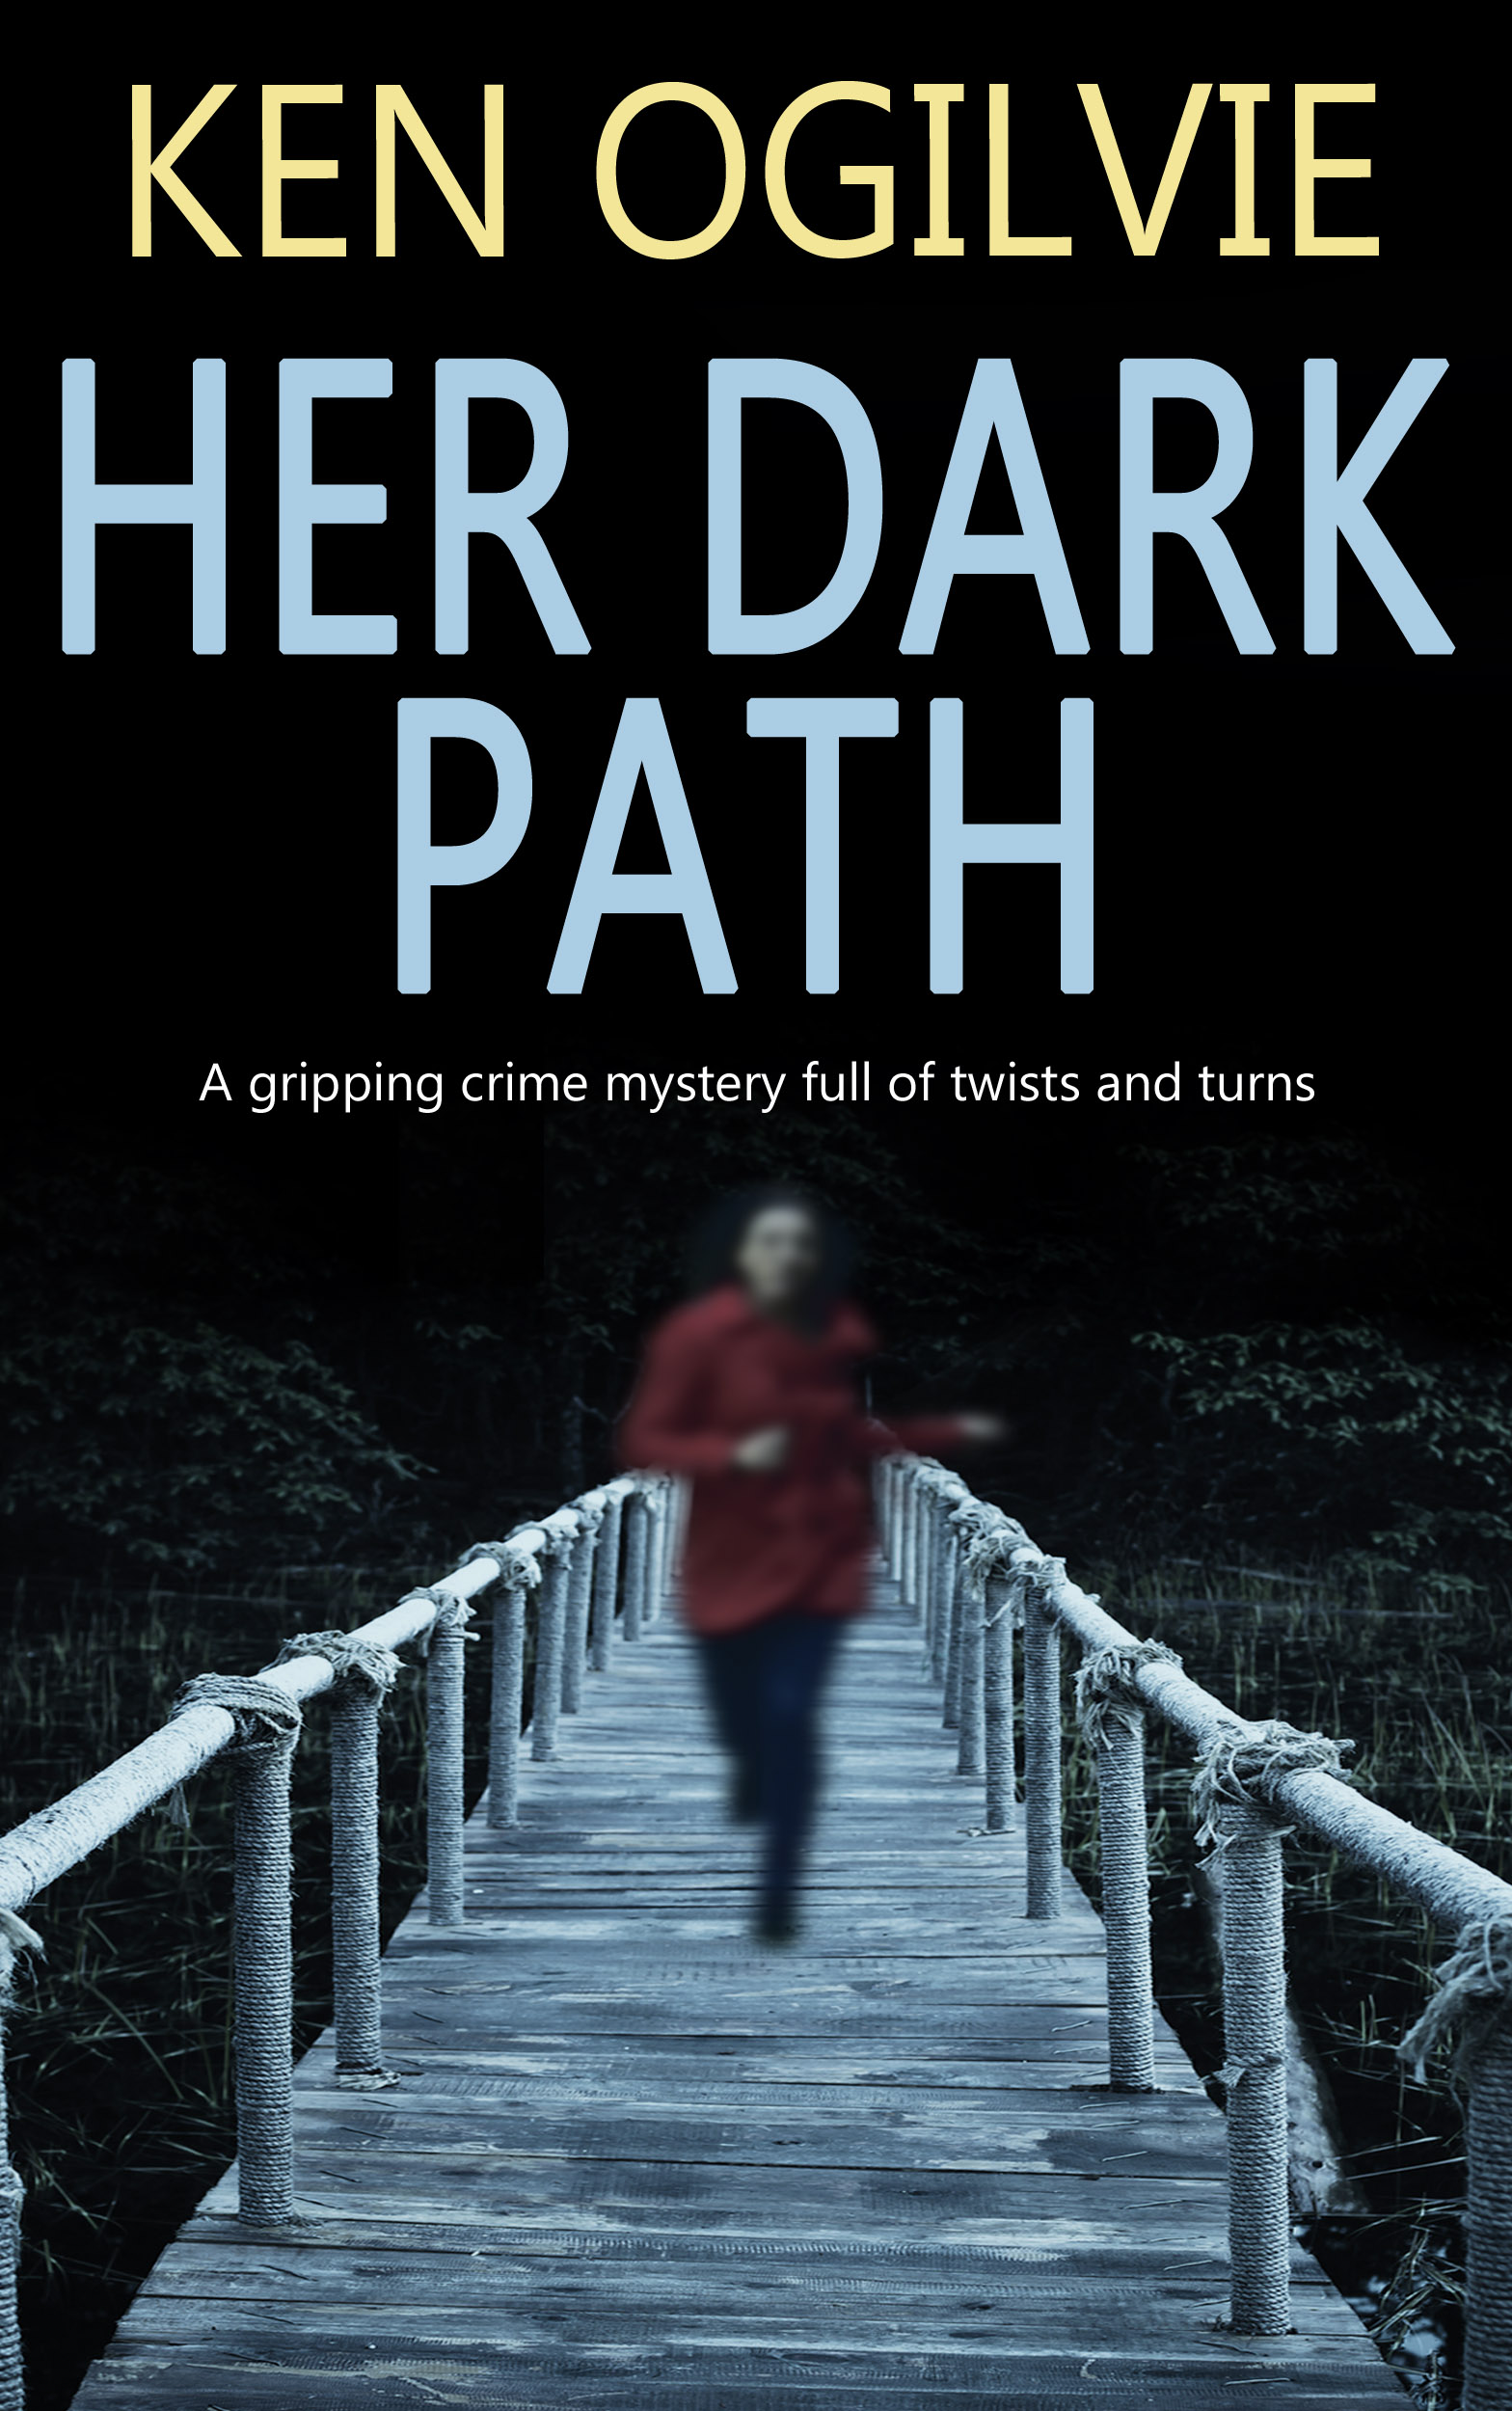 Ken Ogilvie - Her Dark Path cover image